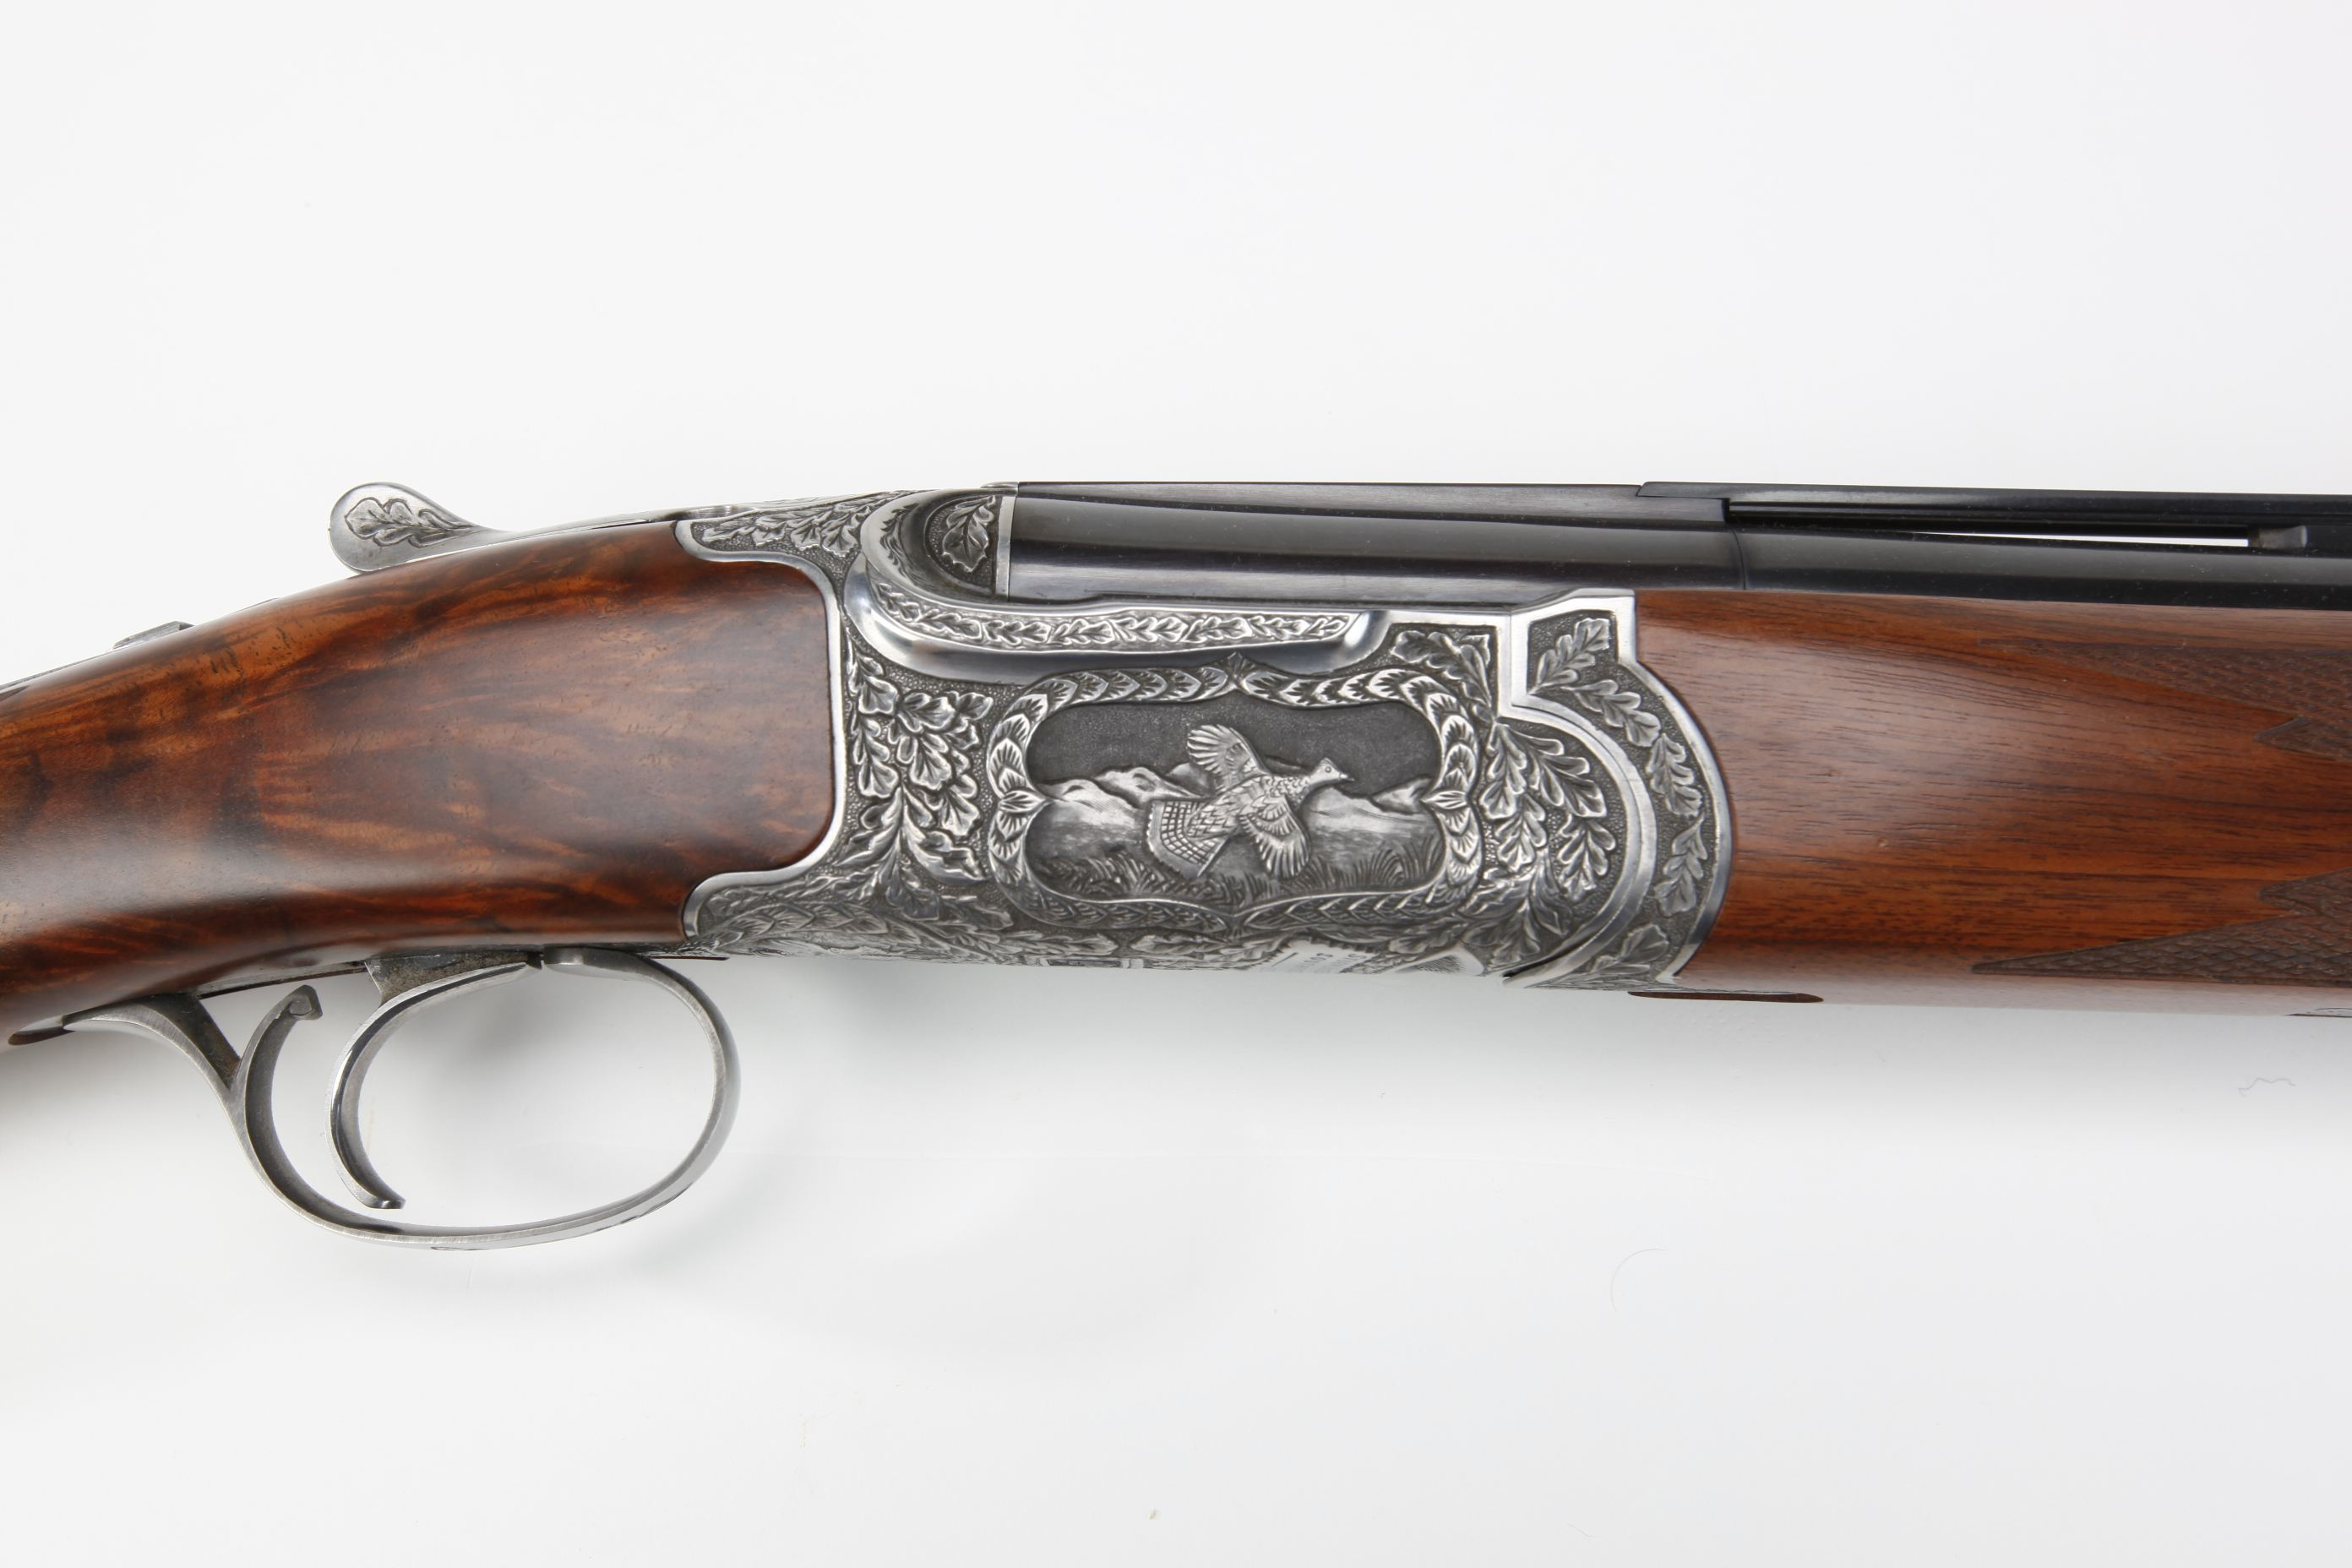 Sturm, Ruger & Co. Stainless Red Label Skeet Shotgun